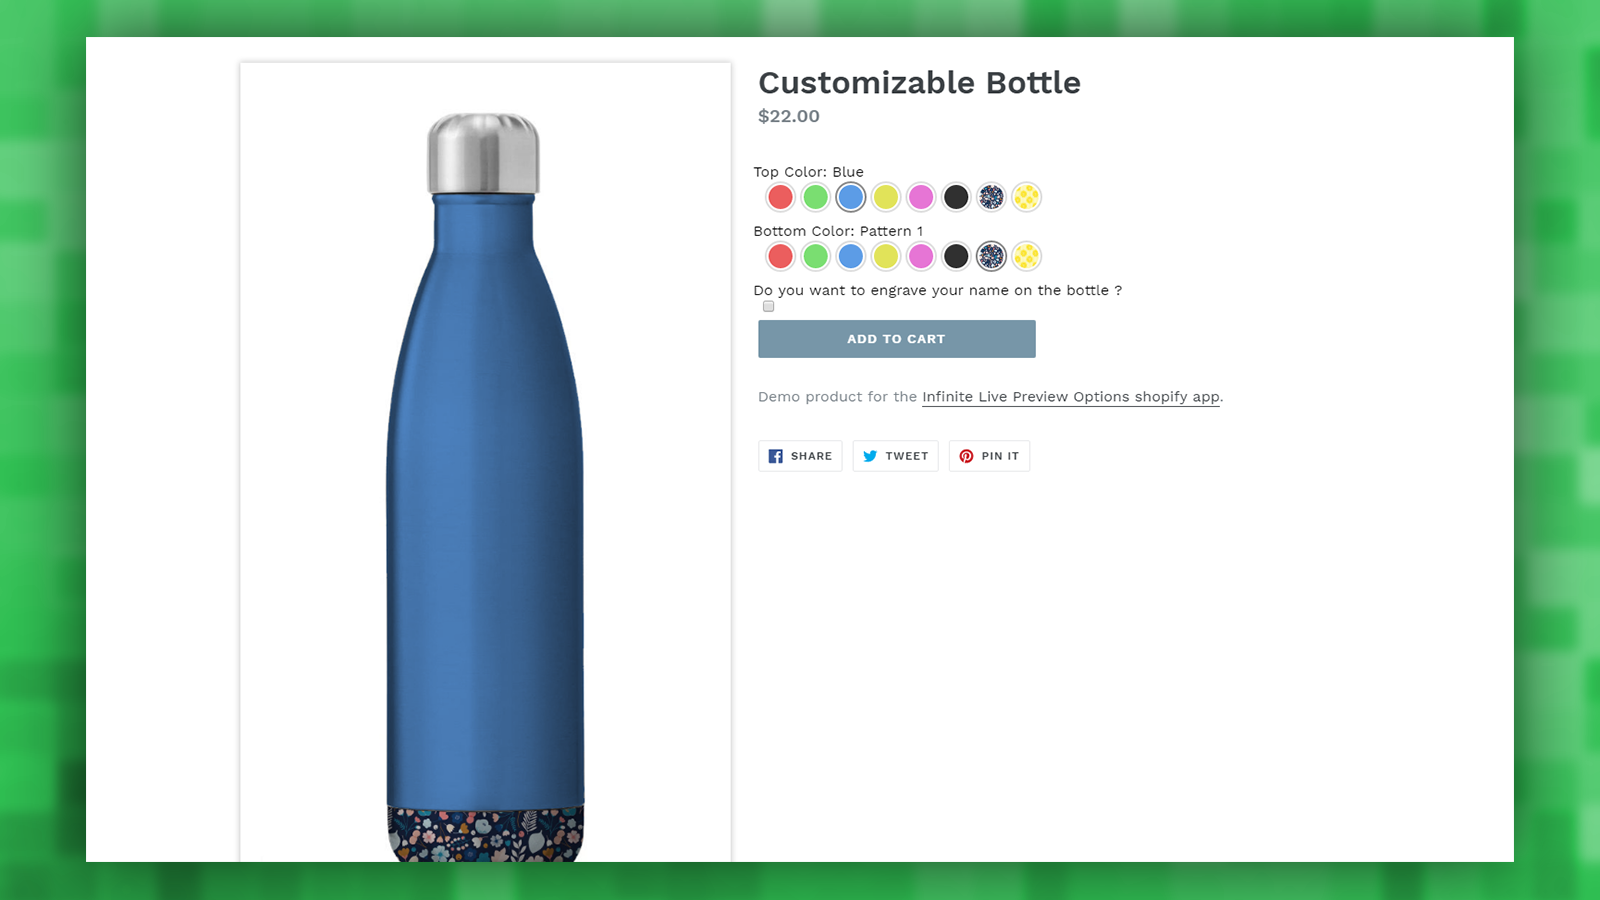 Store: Bottle demo product